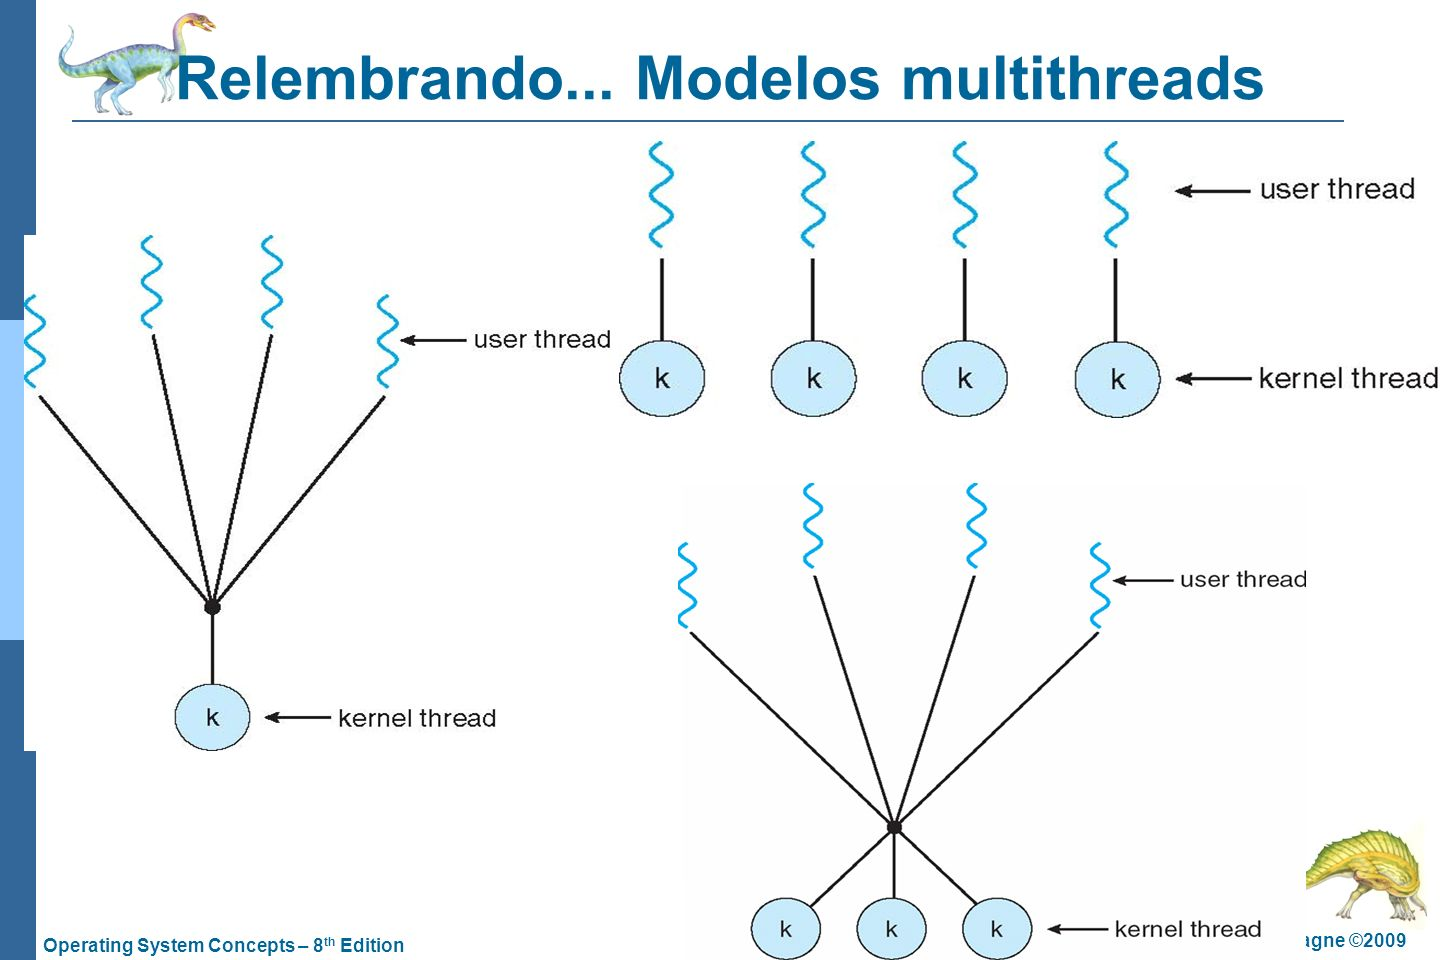 Relembrando... Modelos multithreads